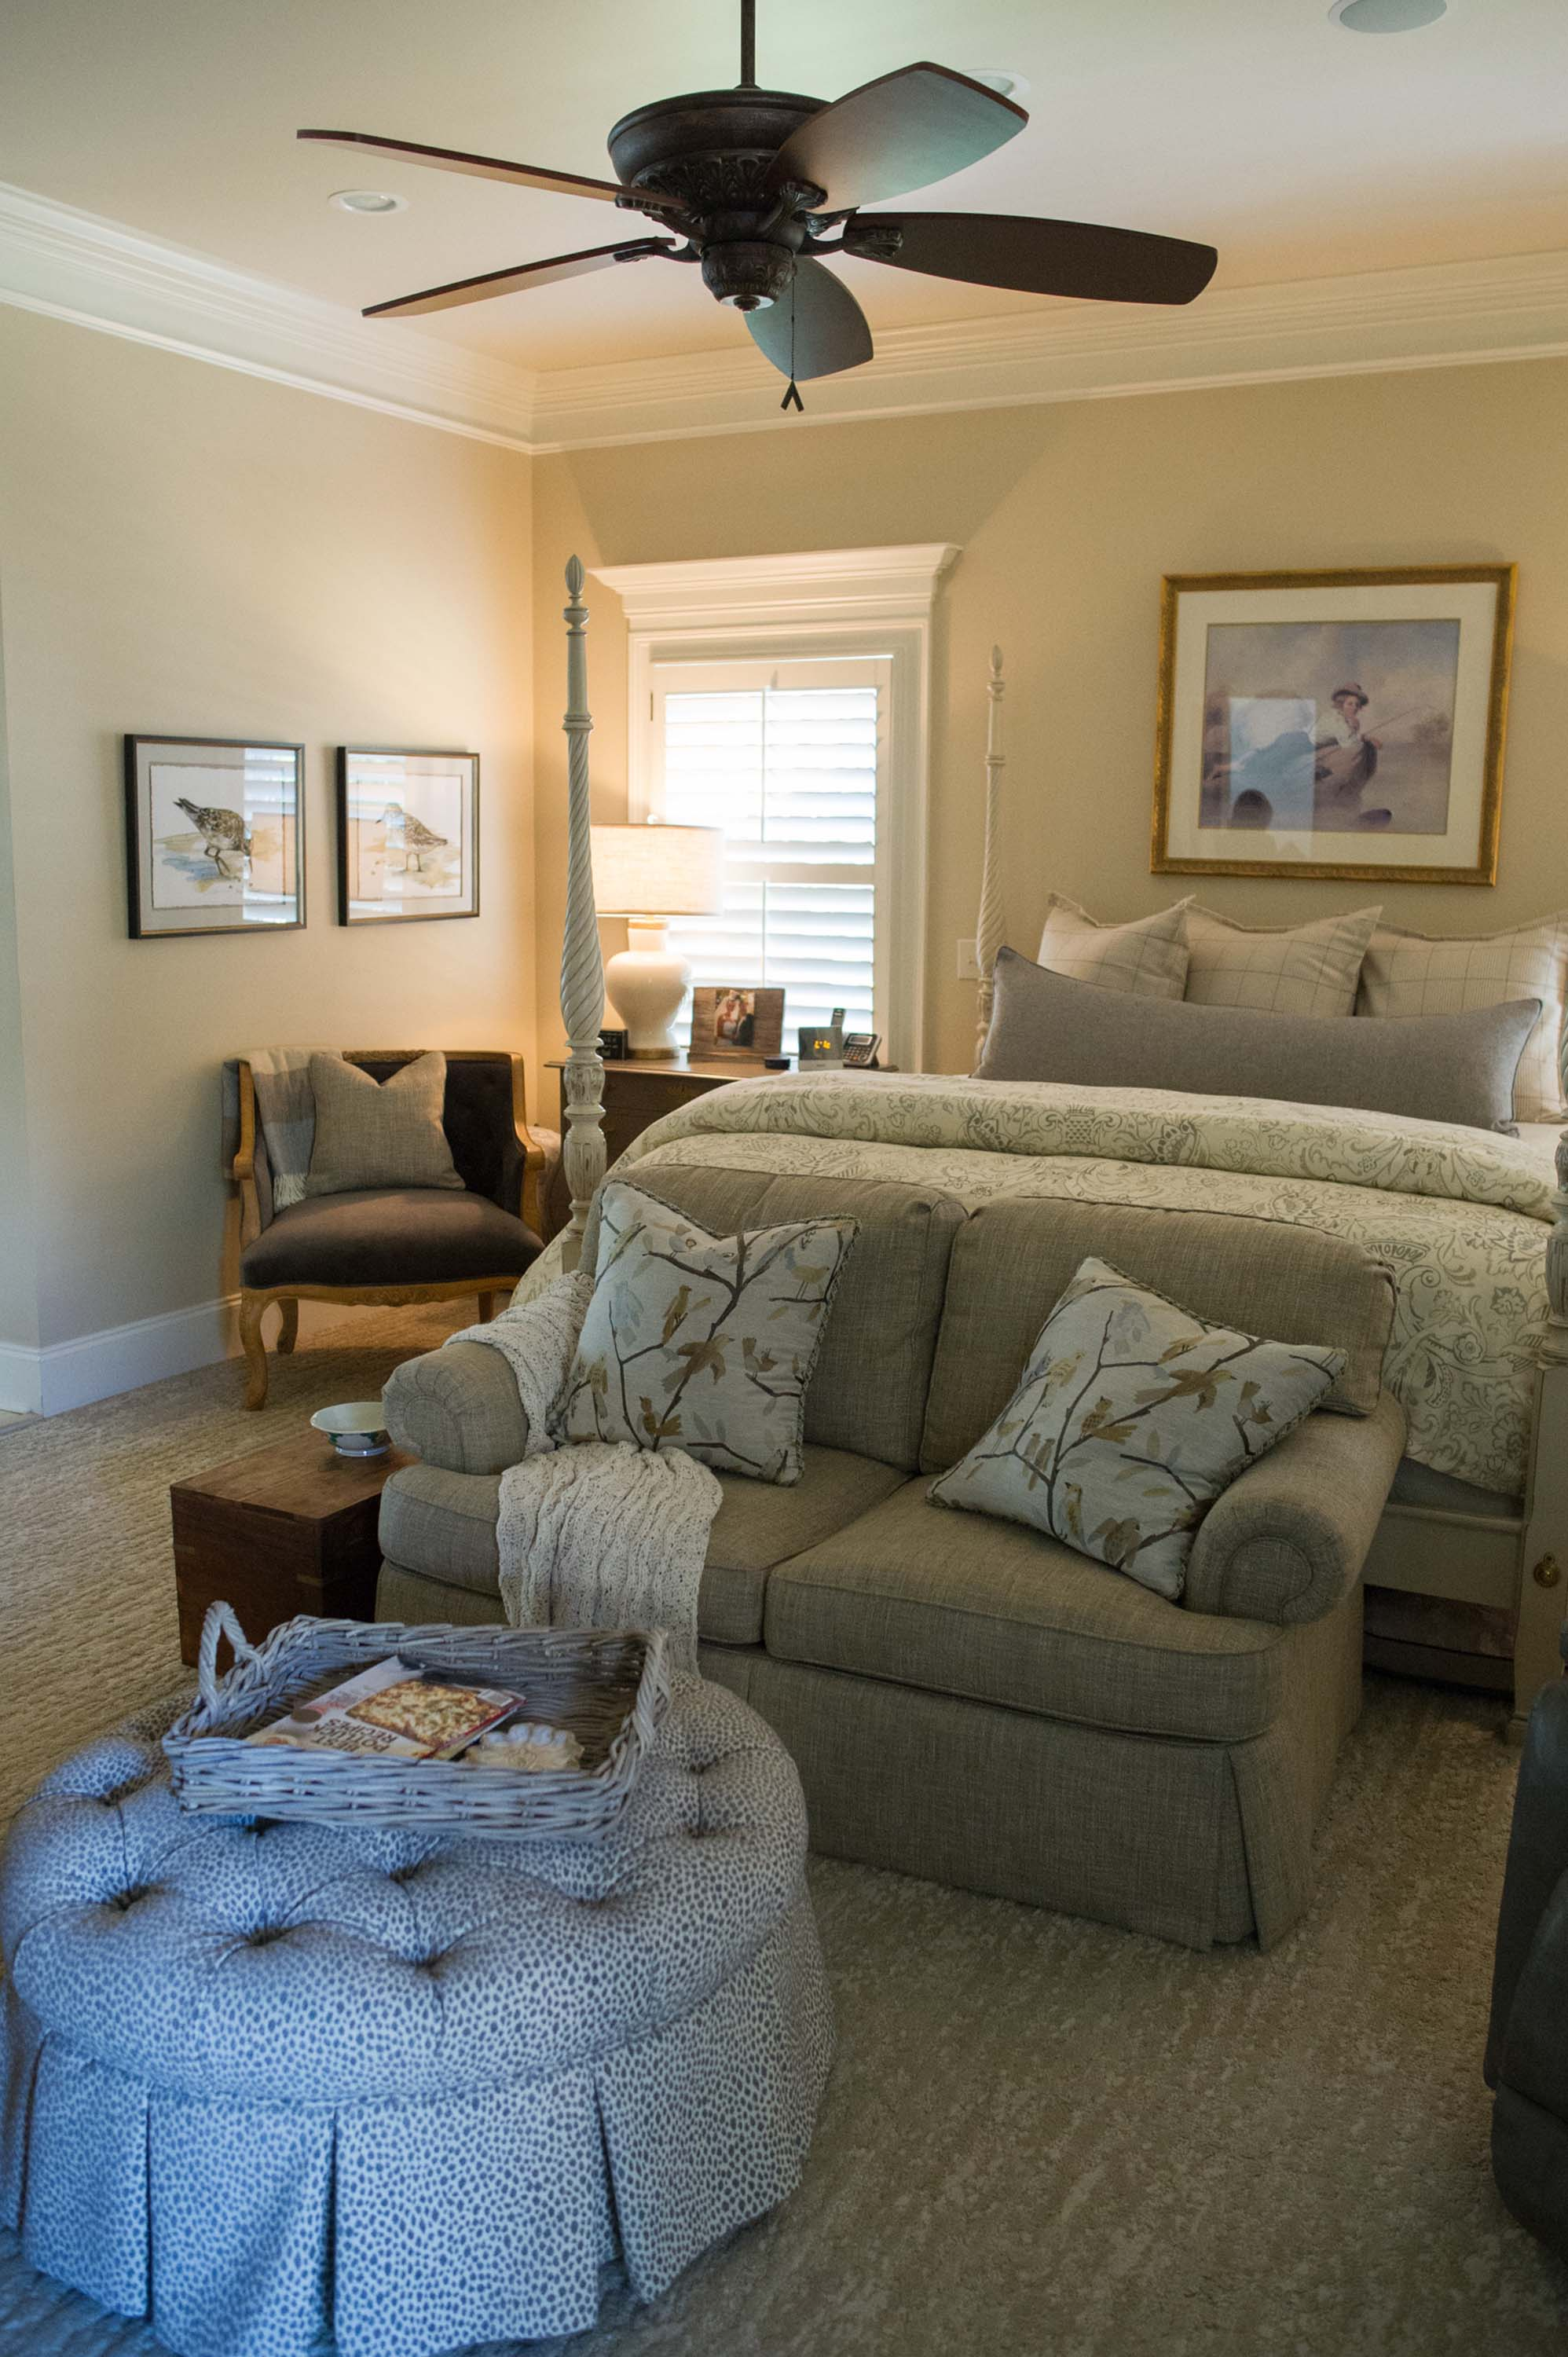 Master Bedroom with Custom Loveseat, Pillows and Recovered Ottoman